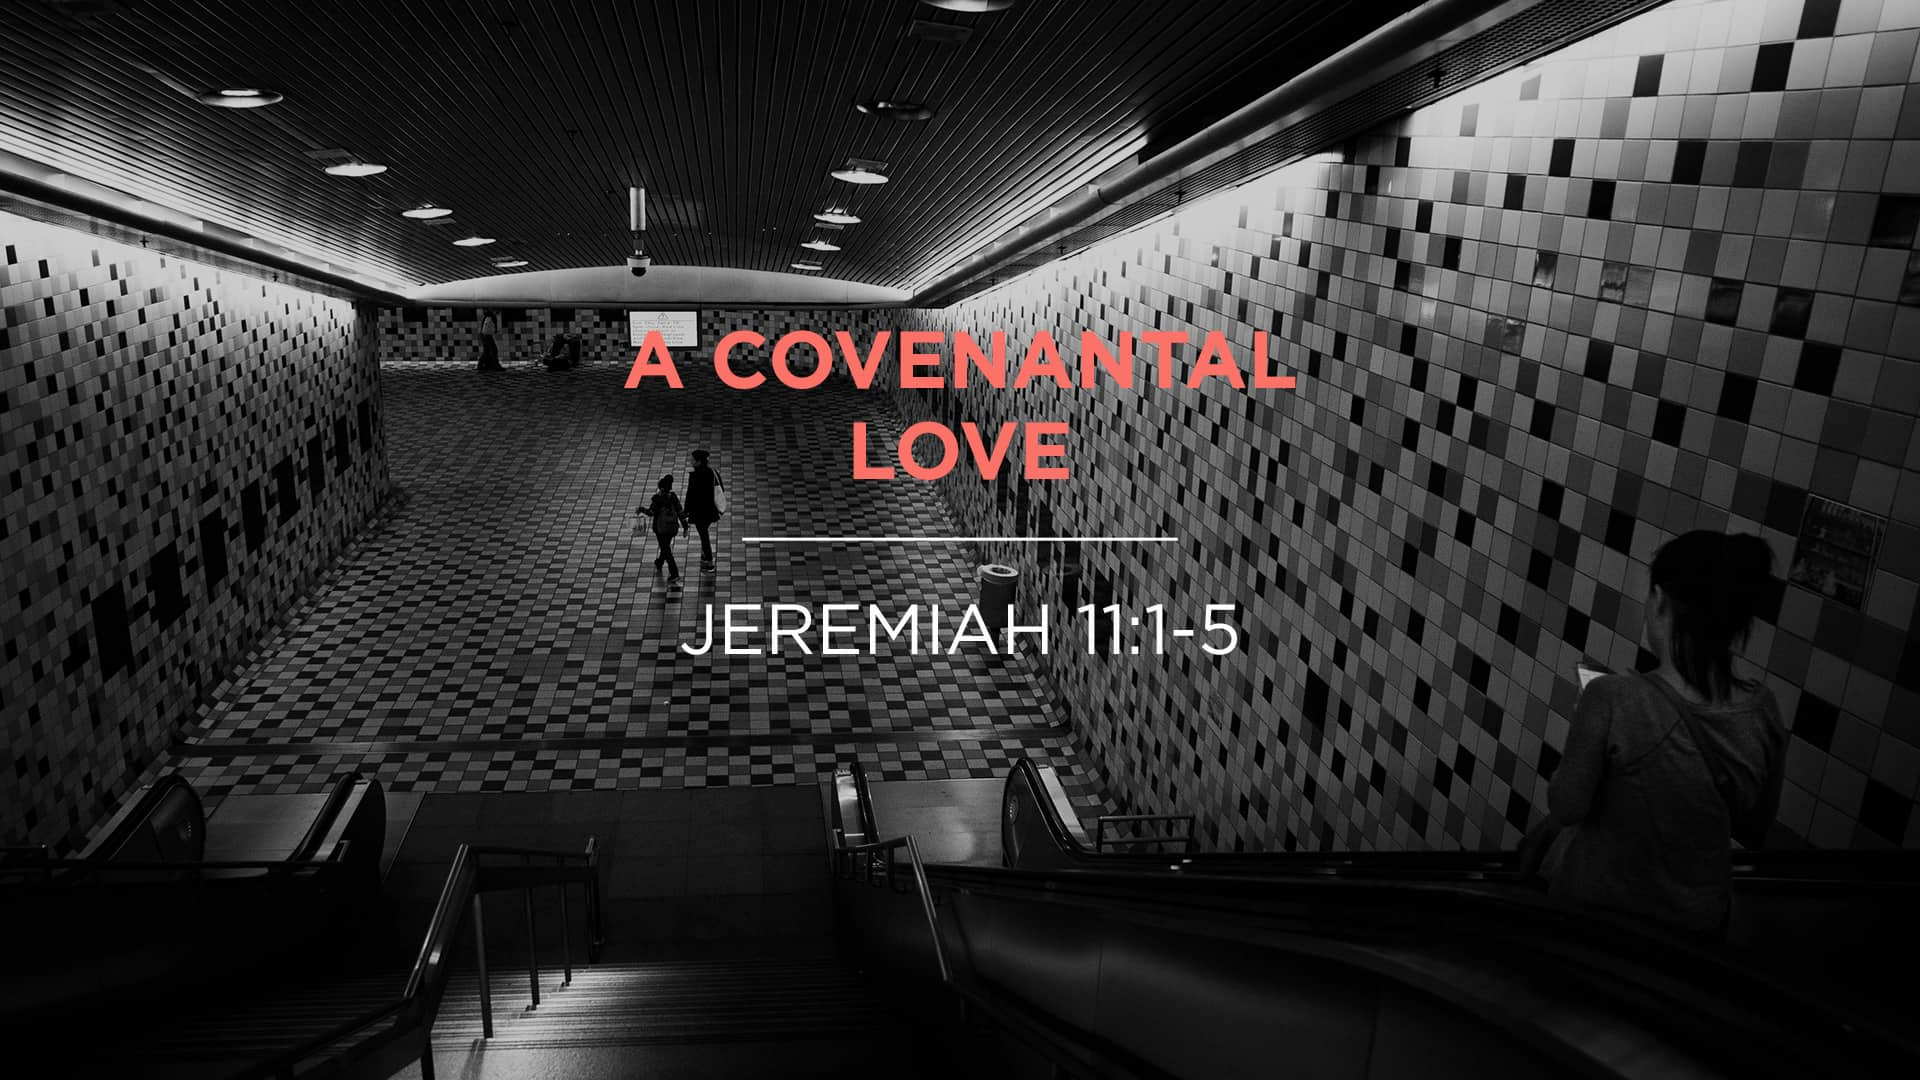 A Covenantal Love